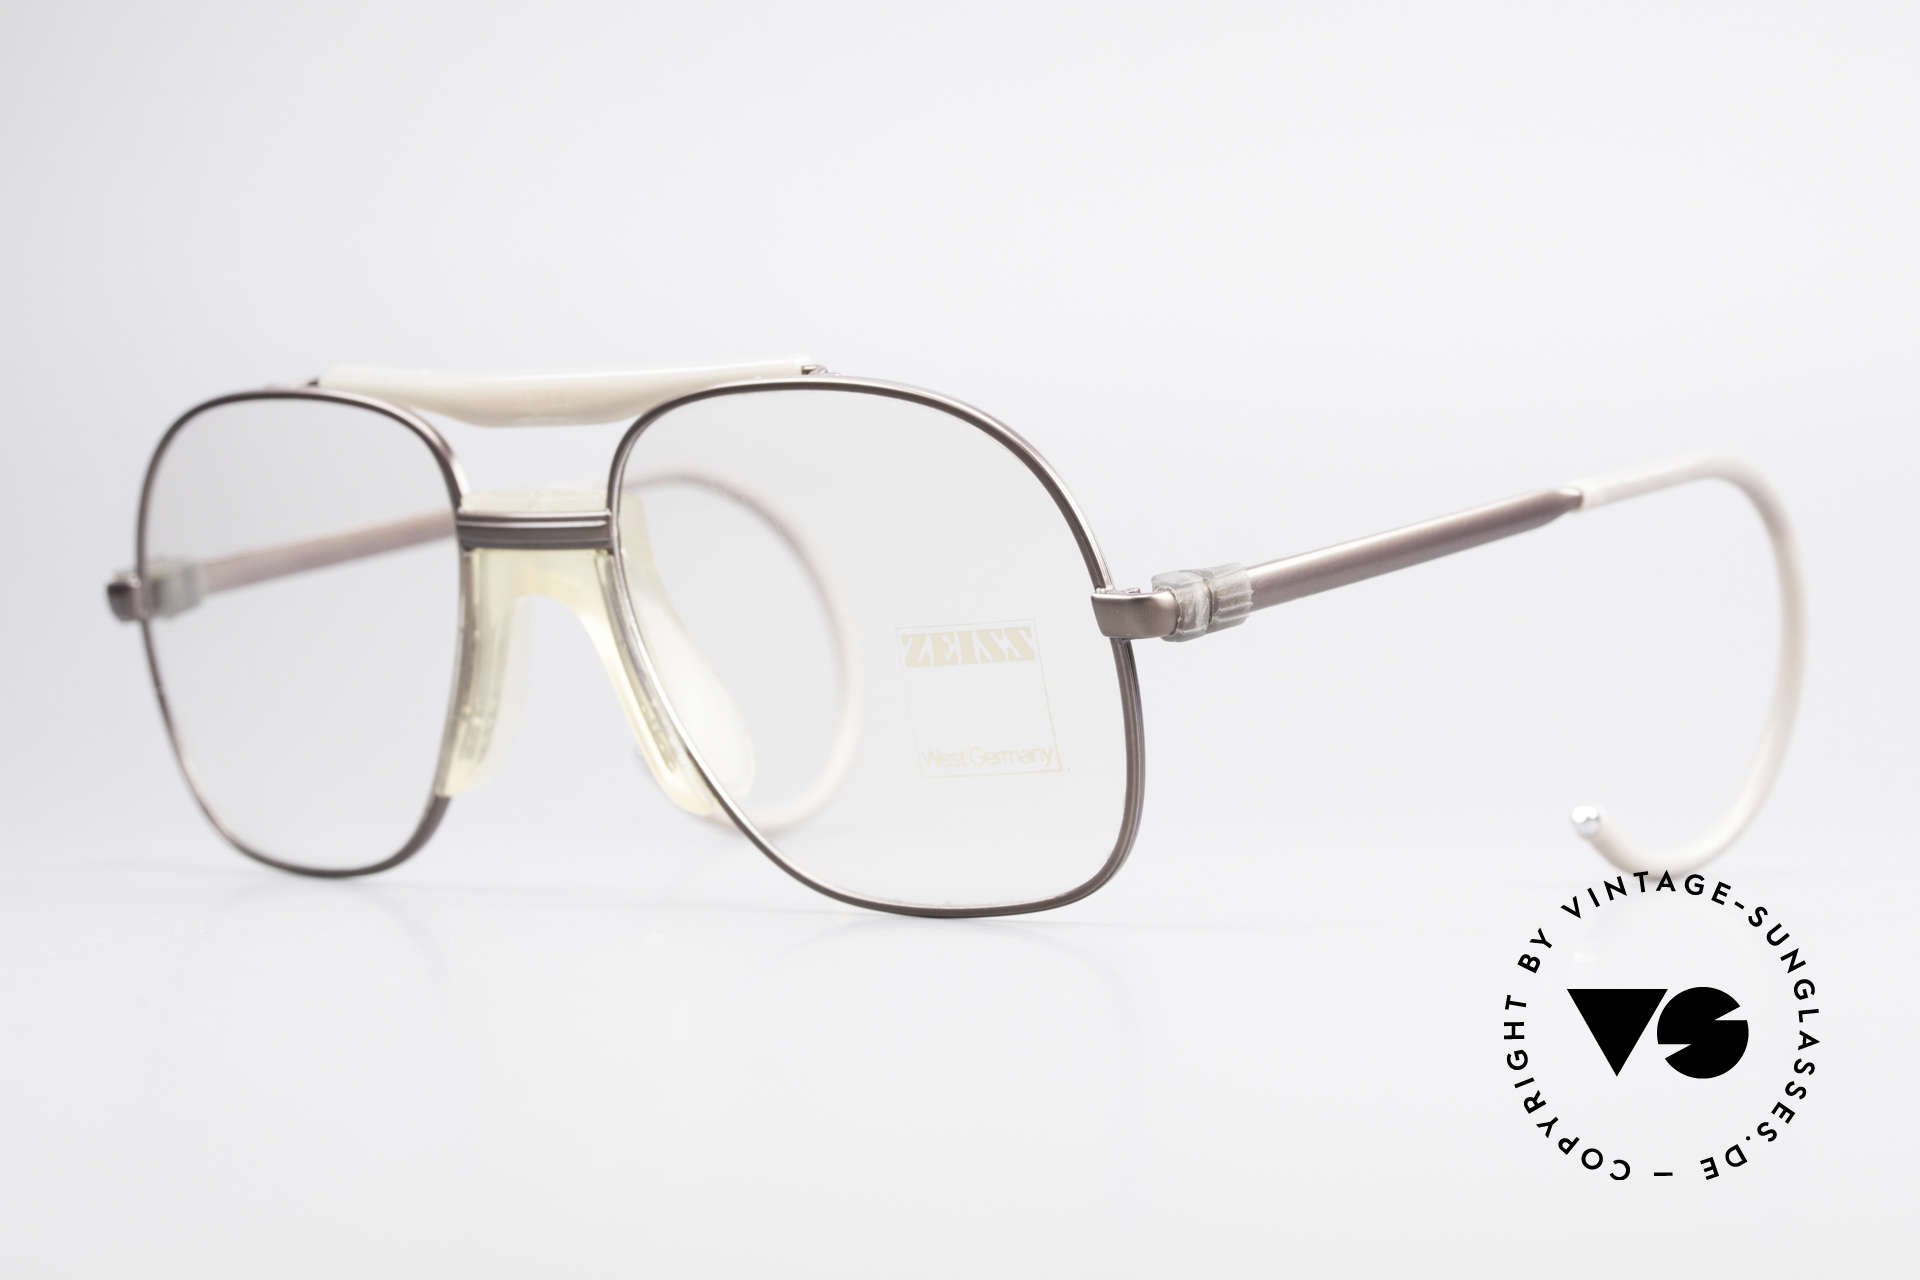 Zeiss 7037 80's Old School Sports Glasses, 'old school' 1980's eyeglasses by Zeiss, W.Germany, Made for Men